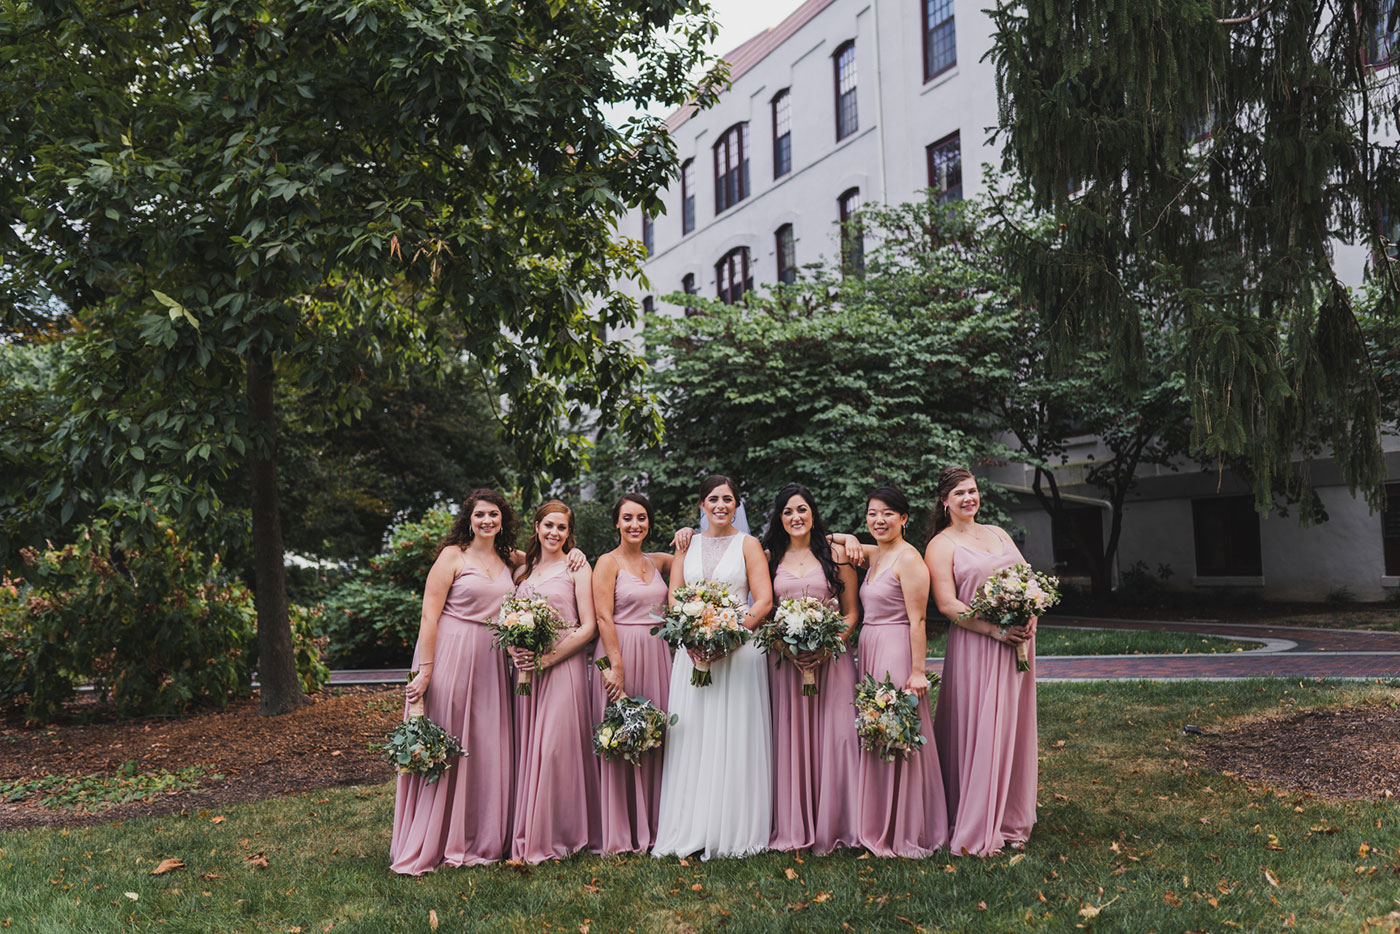 bride and her bridesmaids from a wedding at Saint Thomas of Villanova by Weddings by Hanel